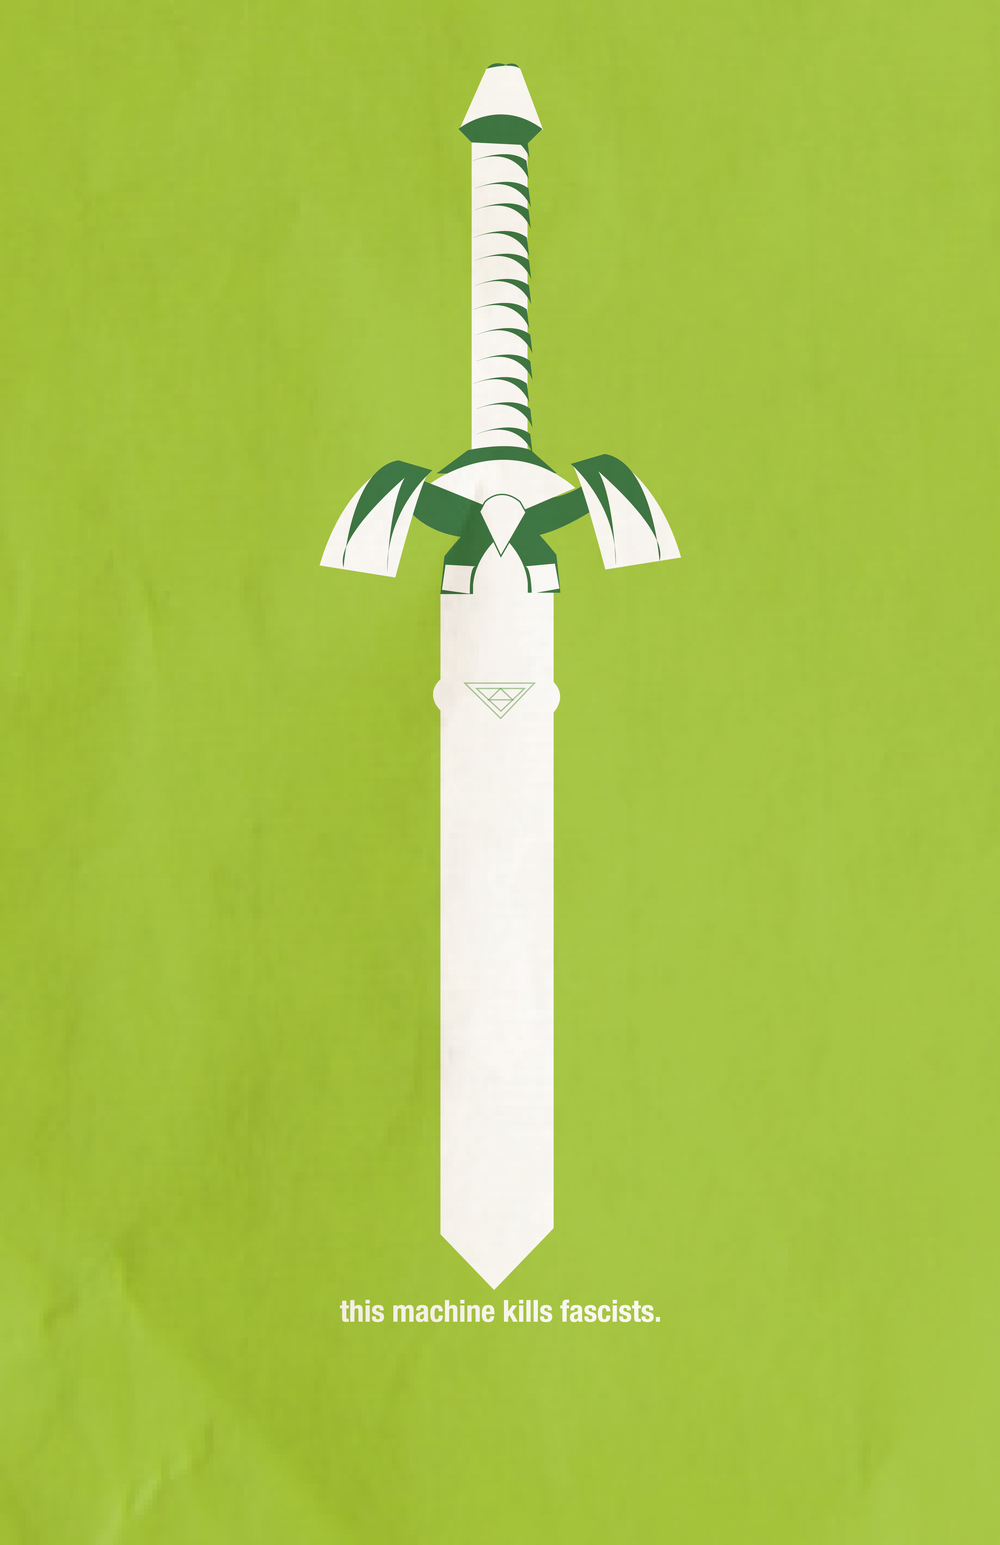 This Machine Kills Fascists: Master Sword